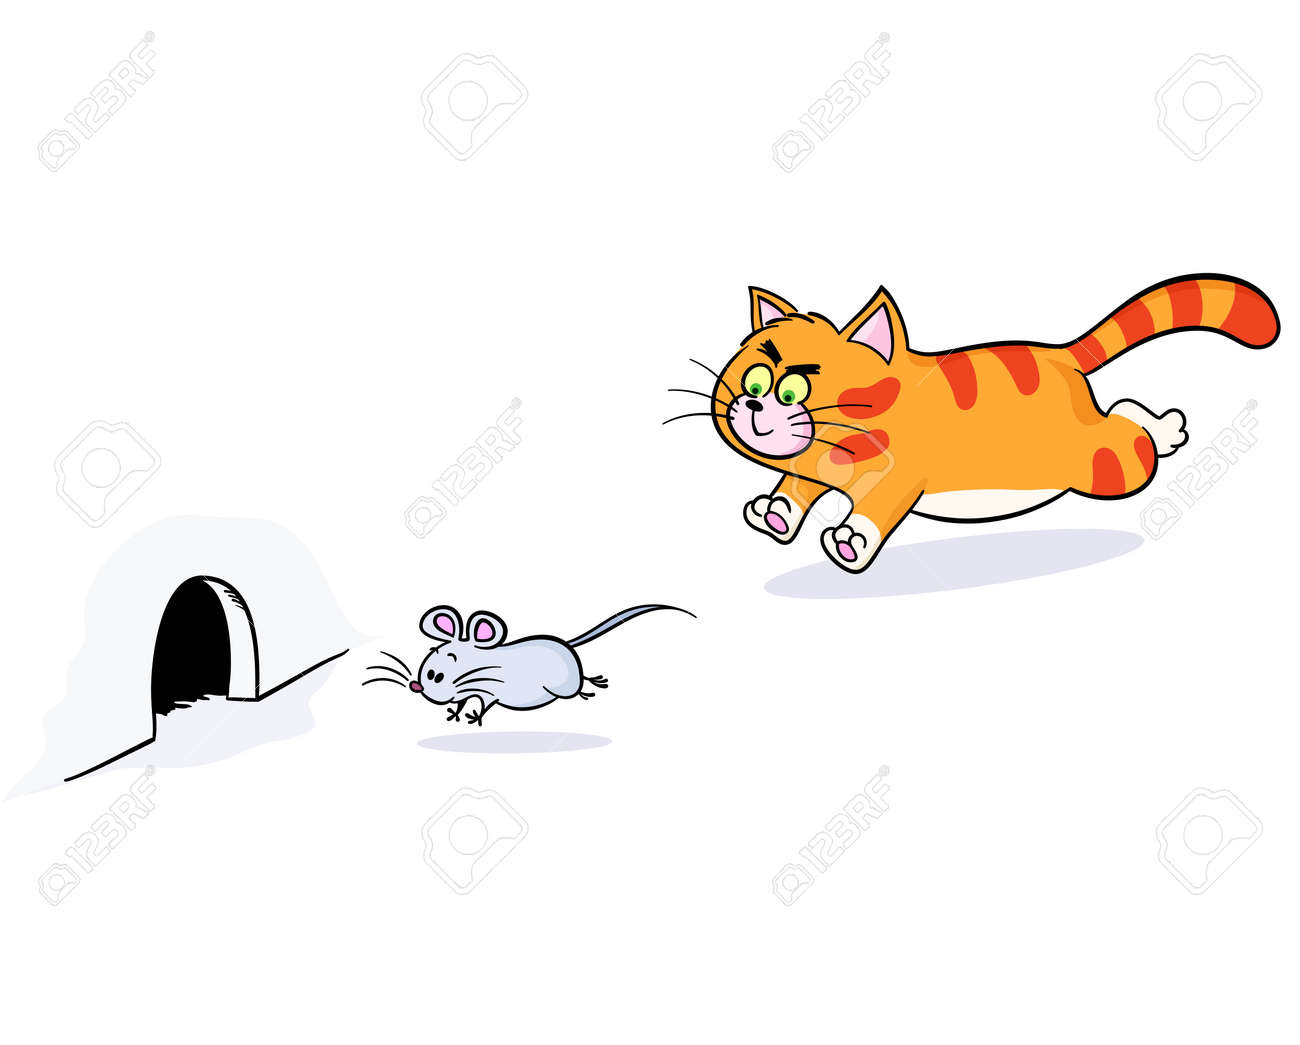 Ginger Cat Chasing A Mouse. Cat Pursuing Mouse And Mouse Escapes.. Royalty  Free Cliparts, Vectors, And Stock Illustration. Image 58512755.